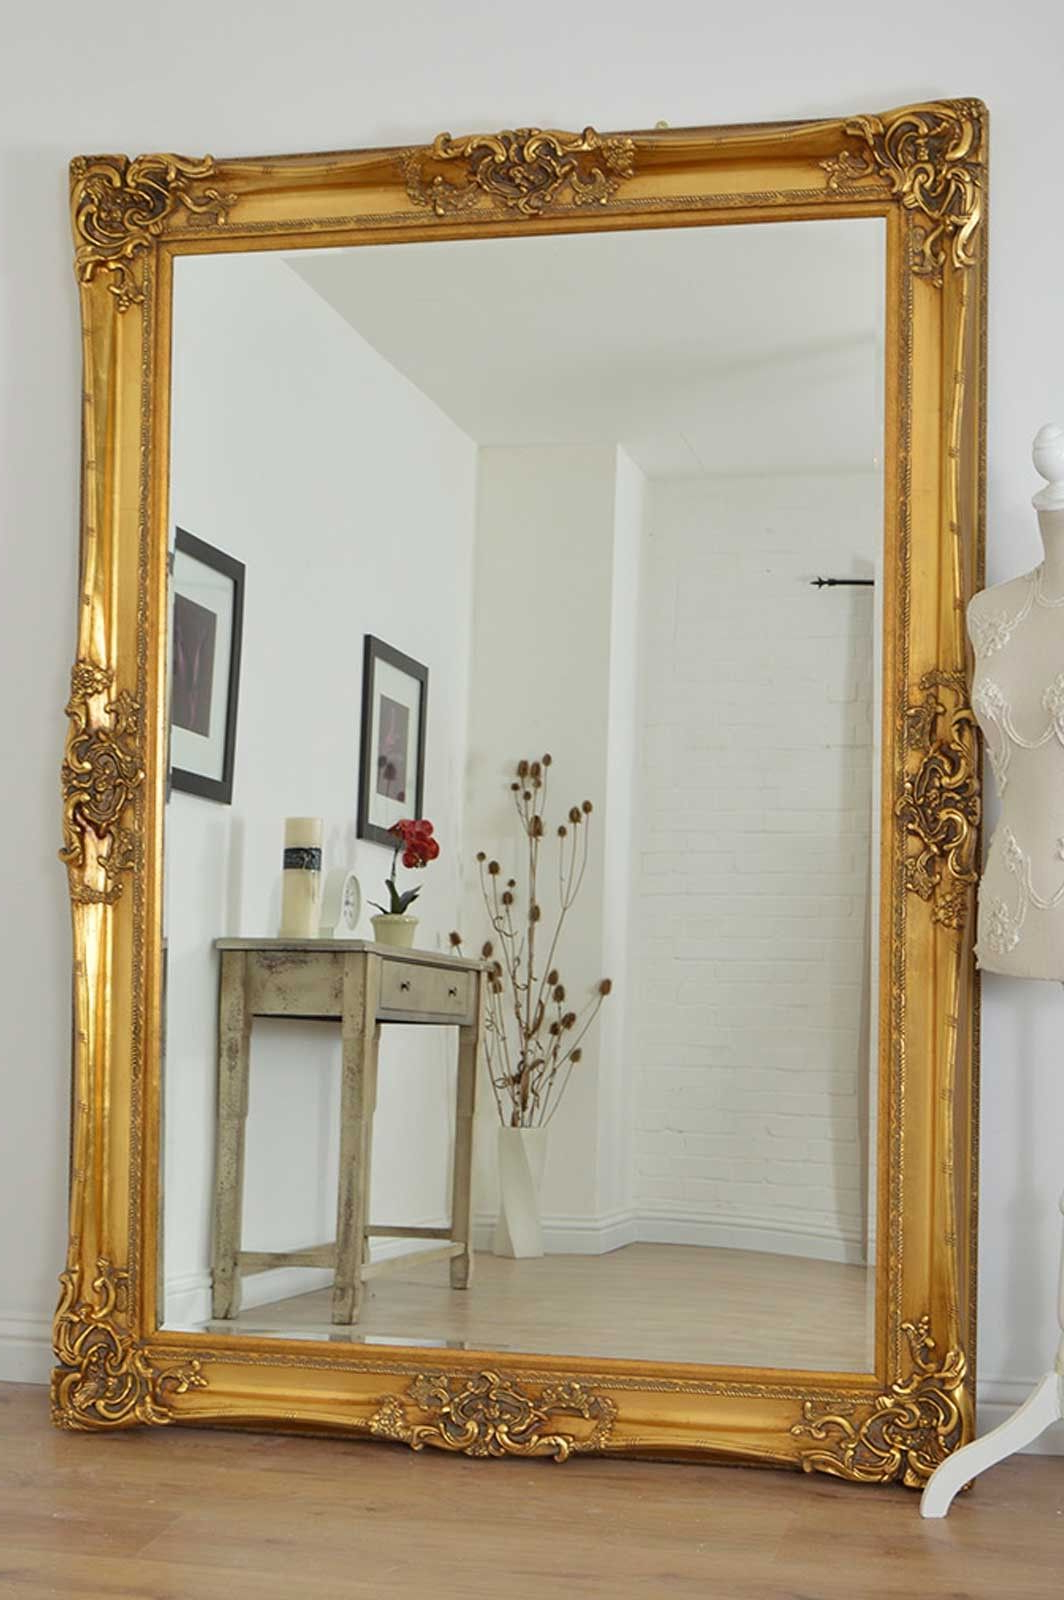 Trendy Standard Wall Mirrors Throughout Large Gold Very Ornate Antique Design Wall Mirror 7Ft X 5Ft (213Cm X (Gallery 11 of 20)